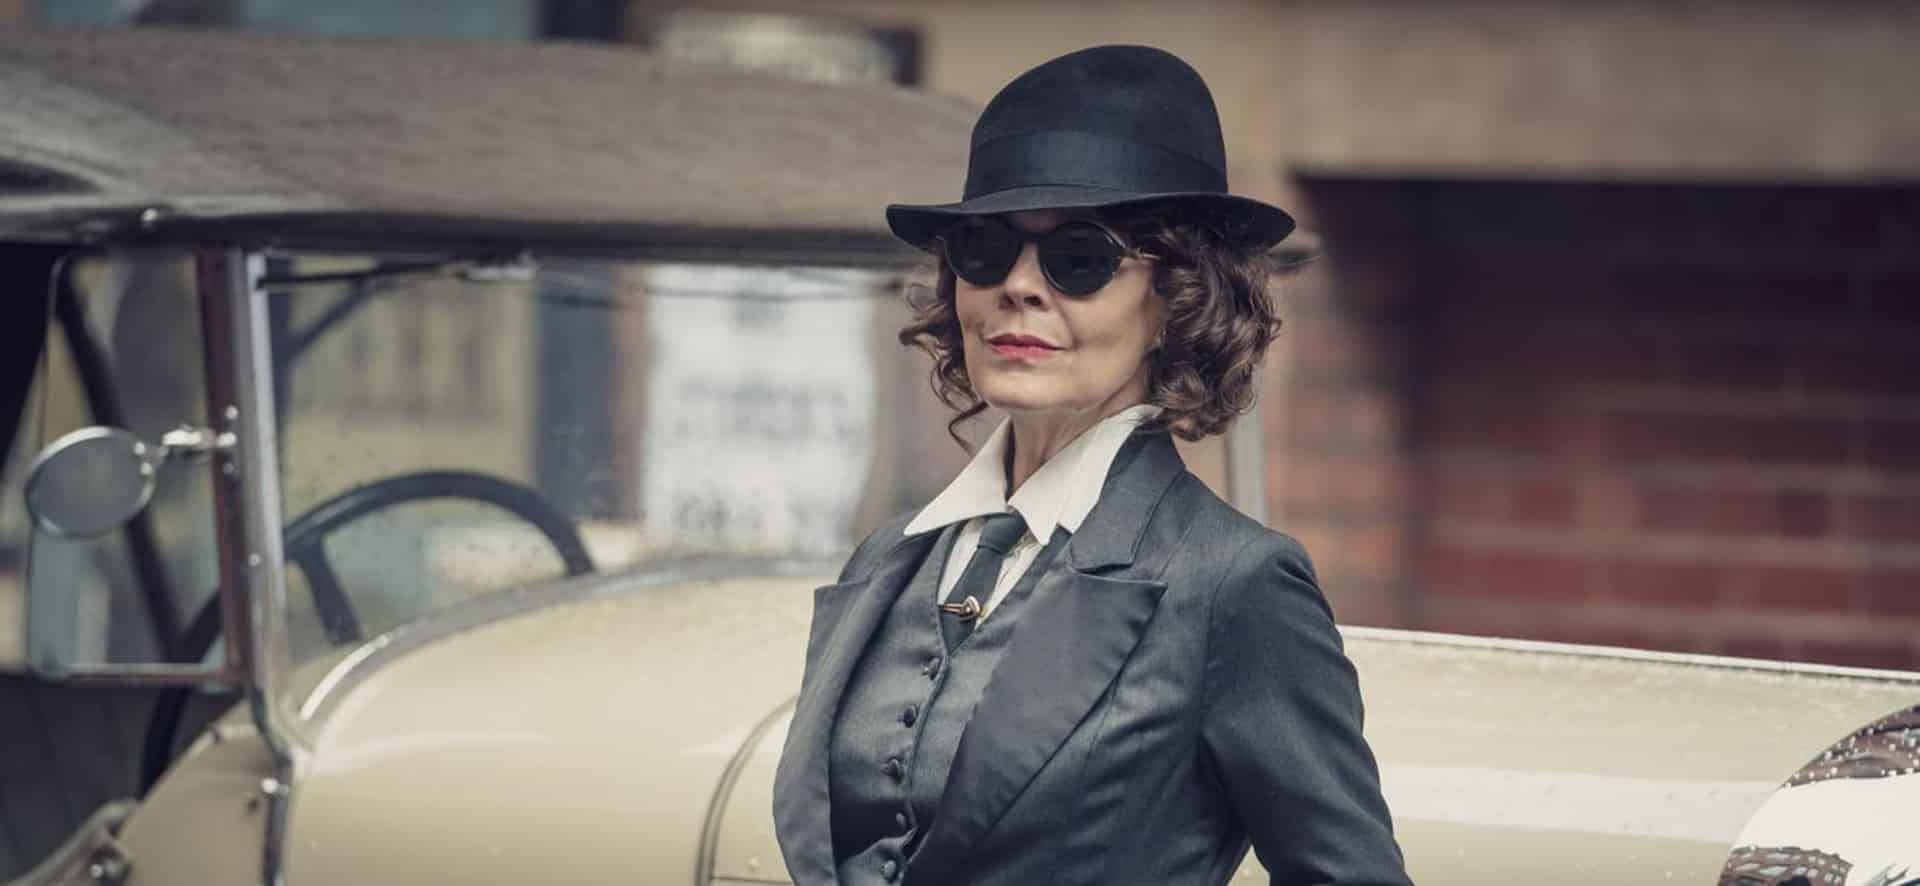 Polly Gray Peaky Blinders, cinematographe.it